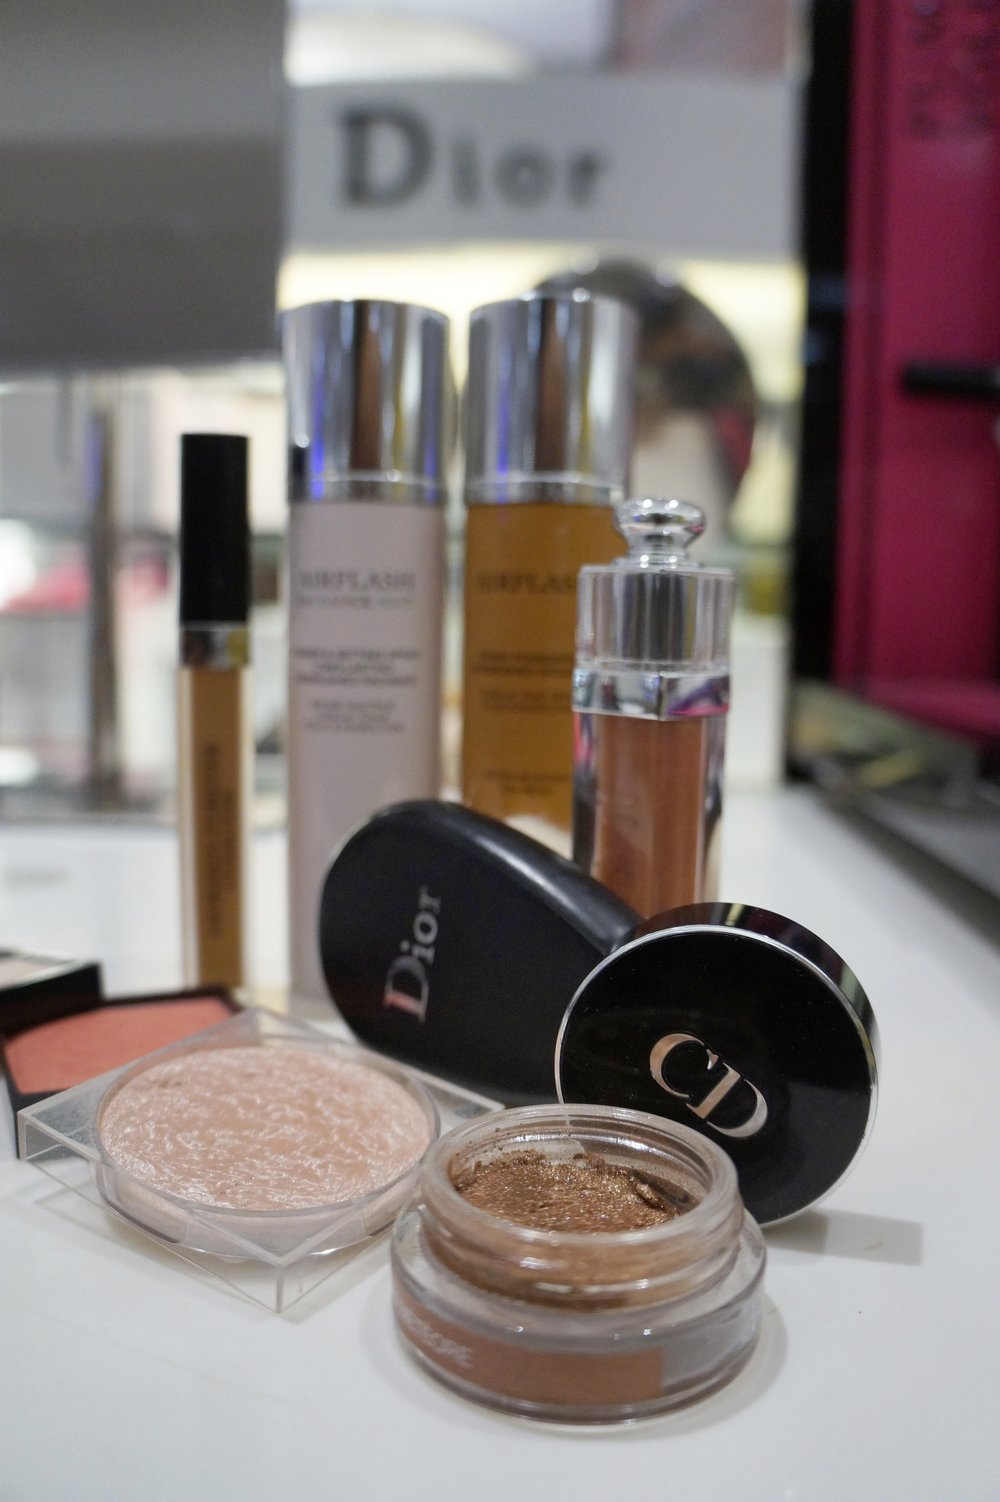 Andrea Fenise Memphis Fashion Blogger shares Blogger Beauty Event with Dior at Wolfchase Galleria Mall